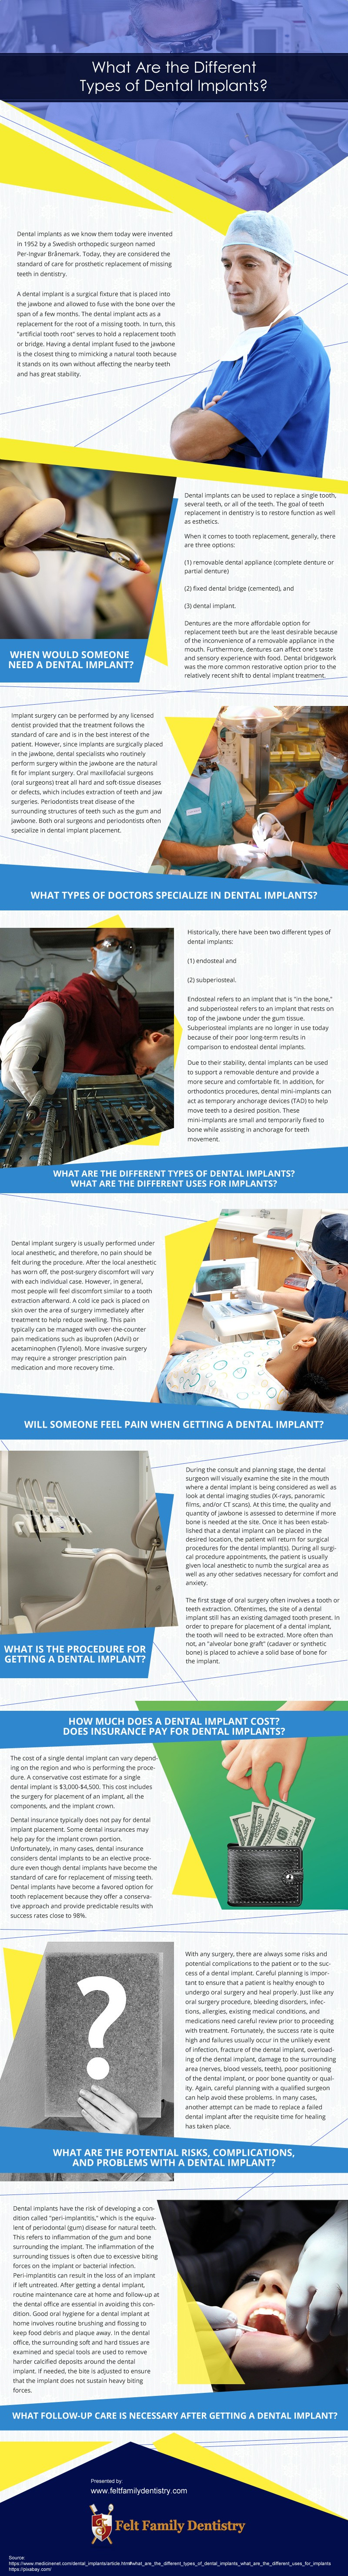 What-Are-the-Different-Types-of-Dental-Implants-Infographic